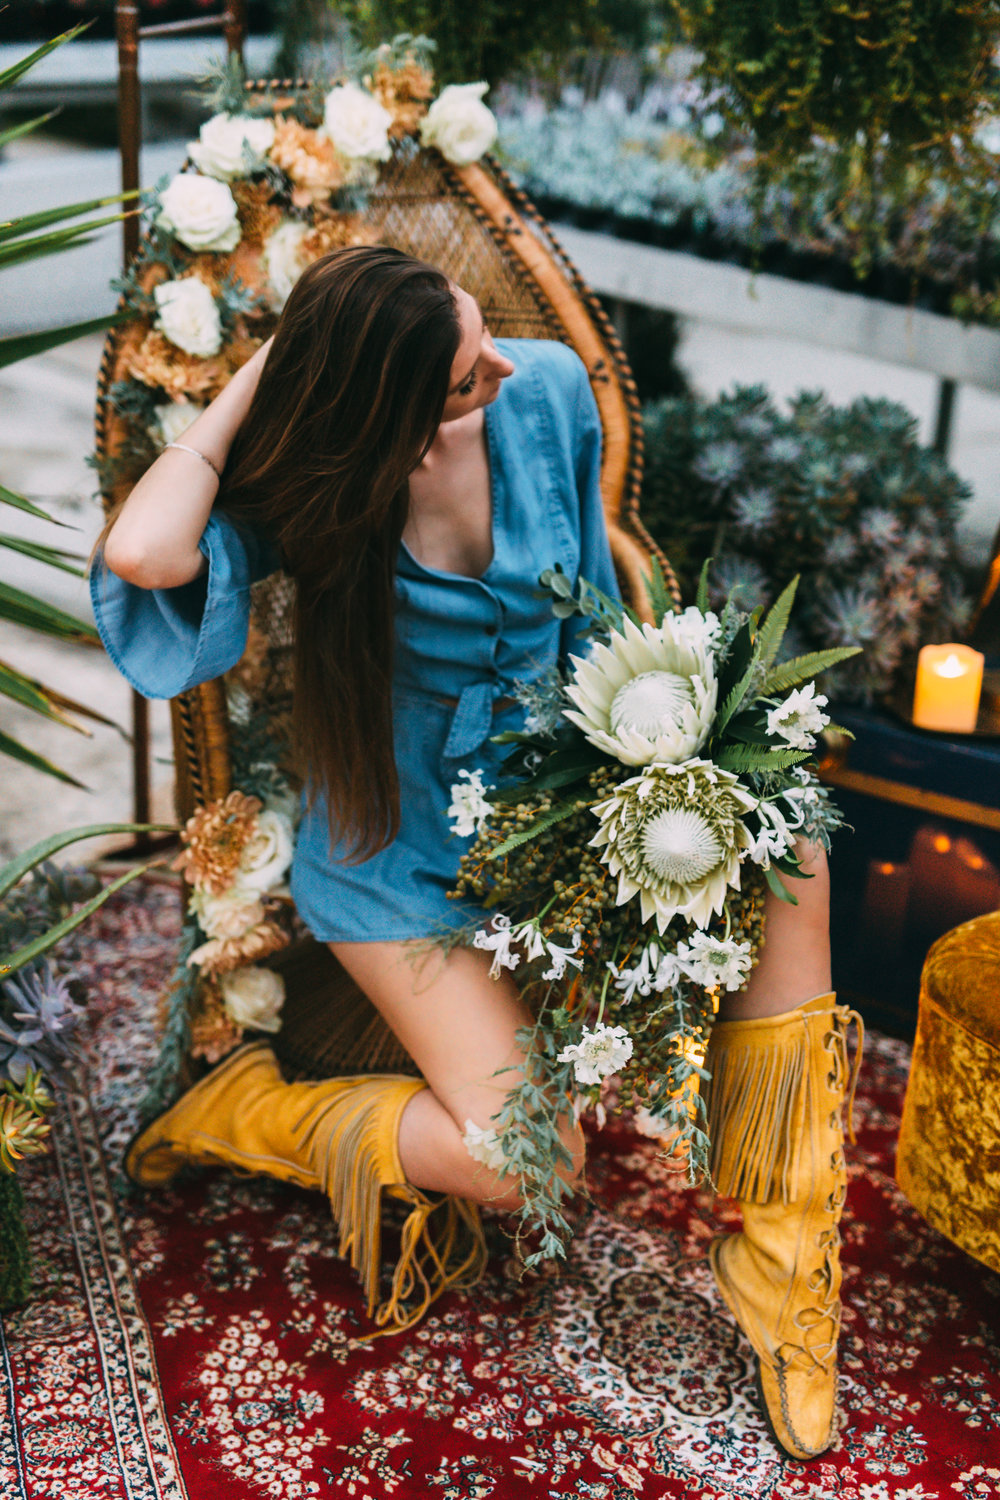 amanda cowley events niagara wedding planner free spirit styling bohemian style peacock chair denim romper